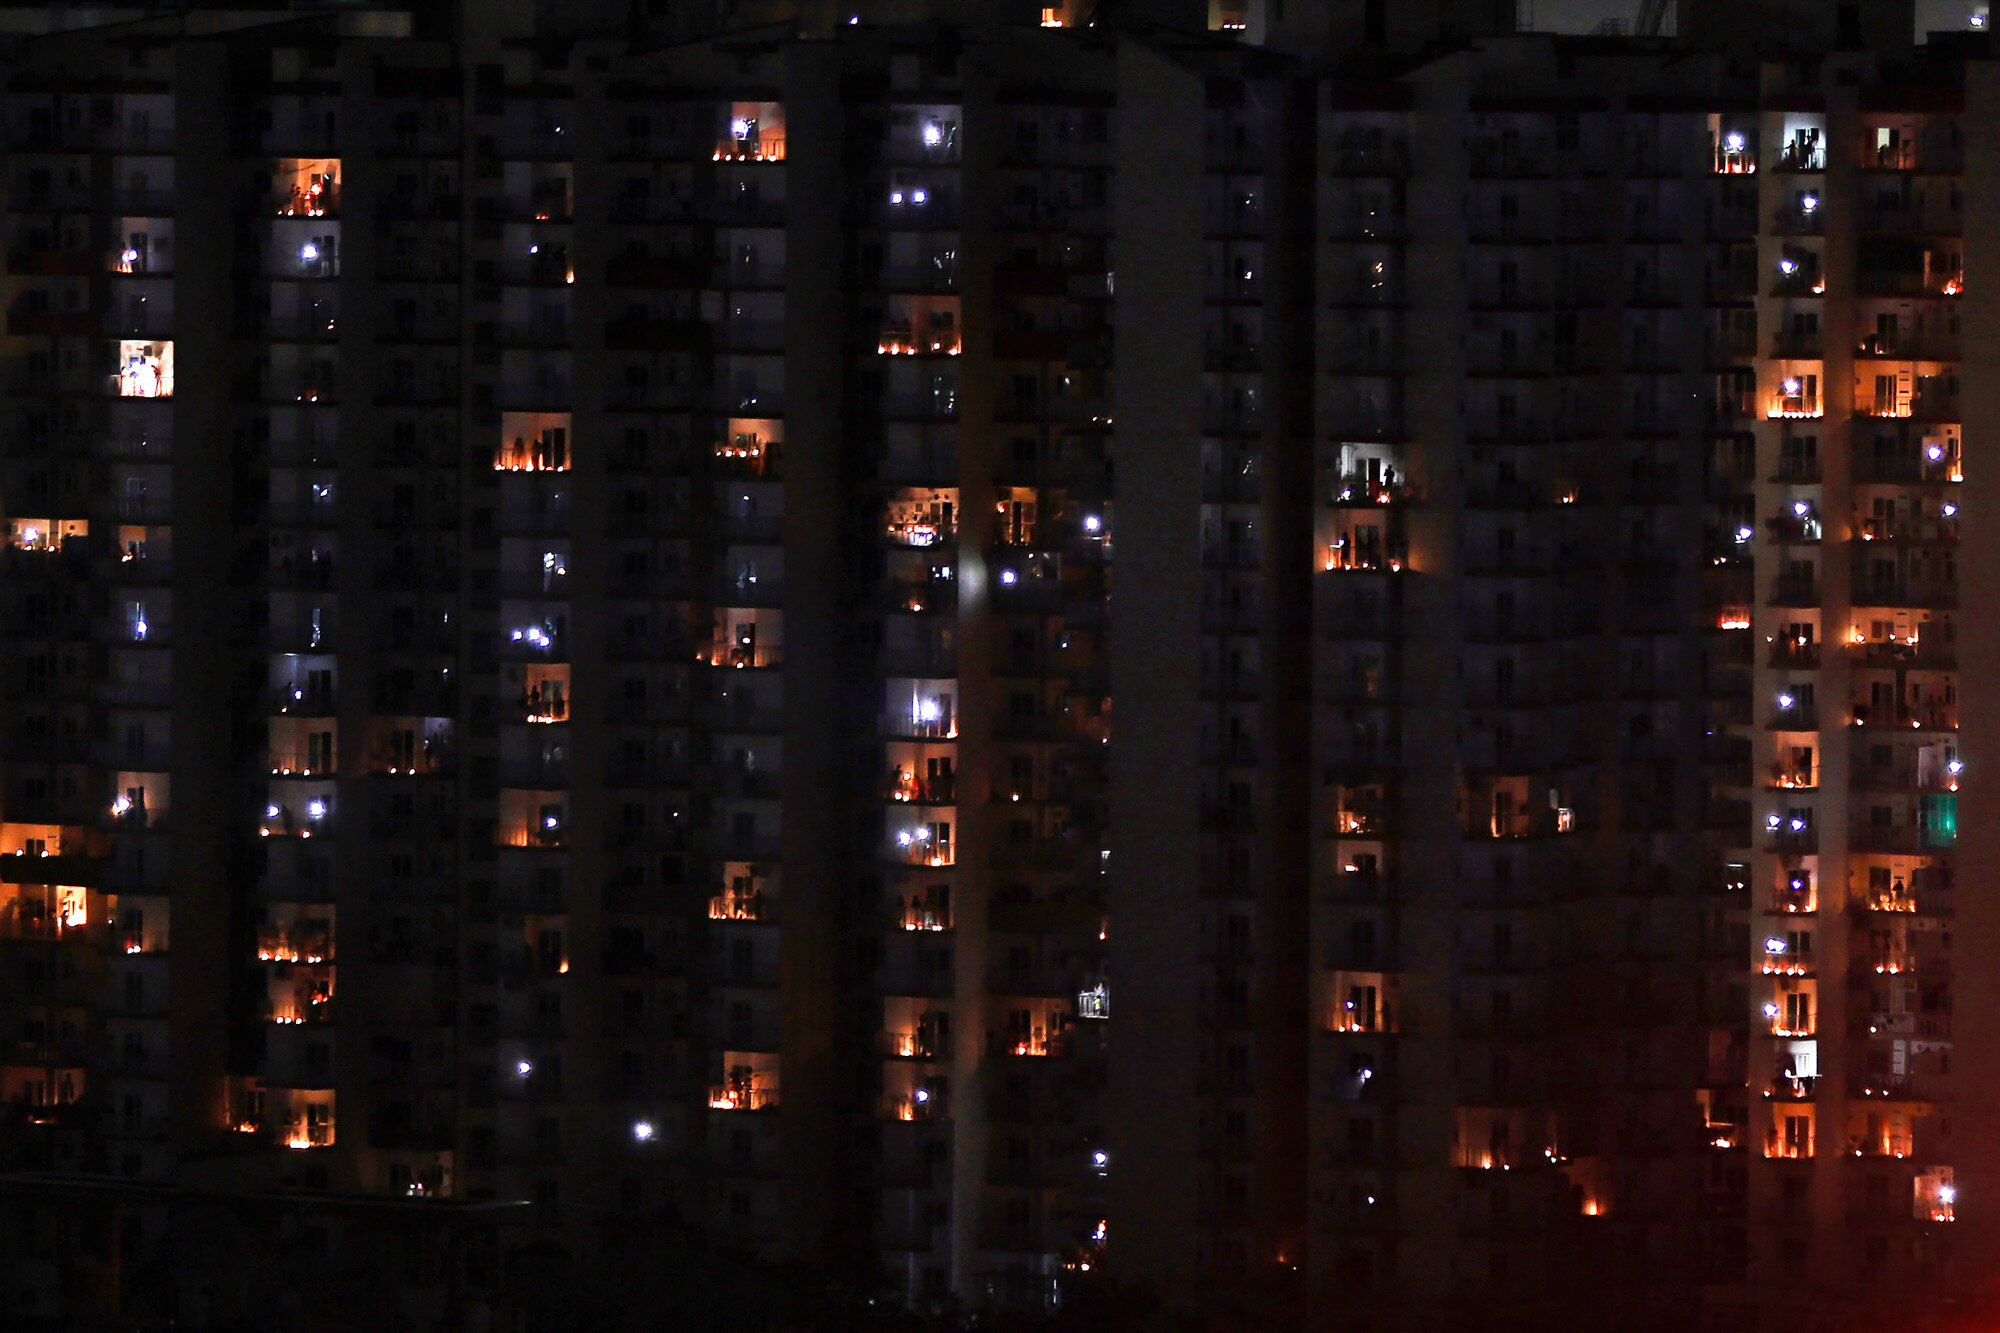 Balconies are illuminated with candles and torches to mark the country's fight against the coronavirus in Greater Noida, a suburb of New Delhi, India, on Sunday, April 5, 2020. (AP Photo/Altaf Qadri)